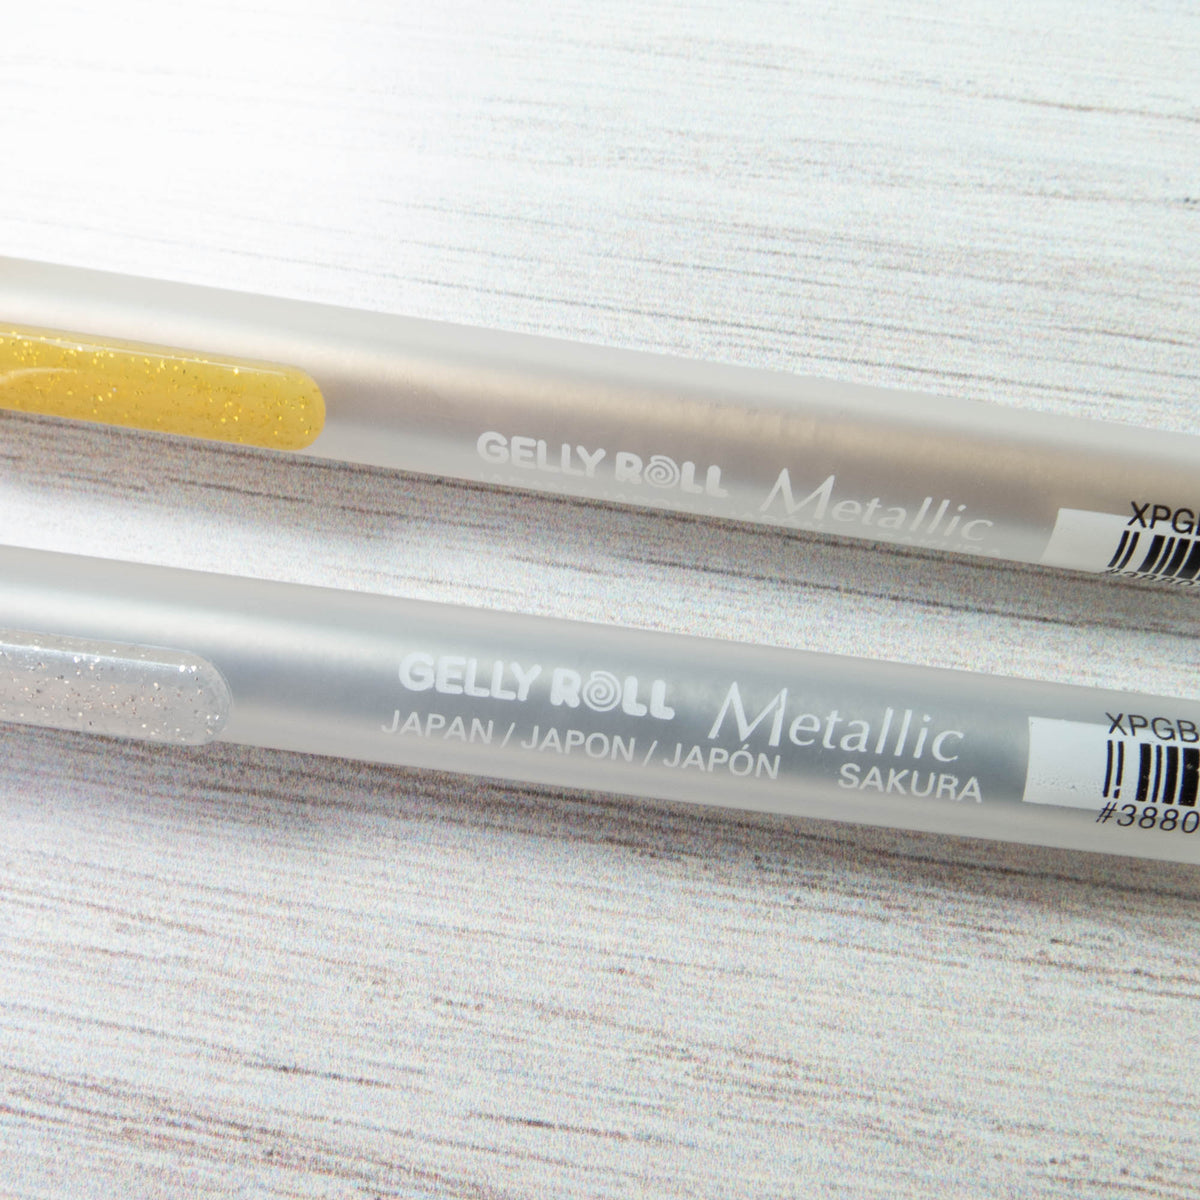 Metallic Gelly Roll Pen (Silver or Gold)